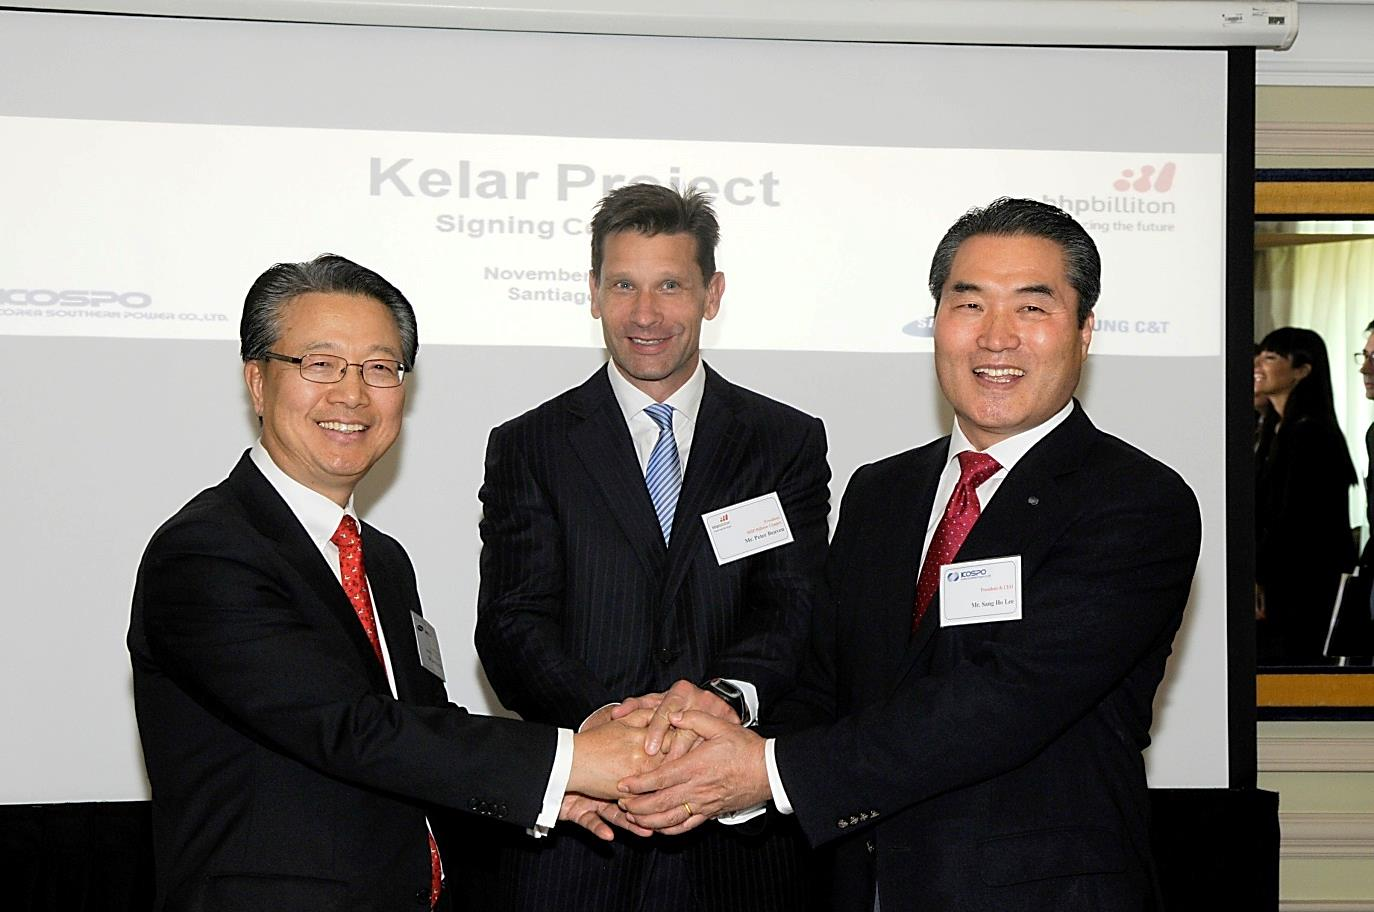 KOSPO President Lee Sang-ho (right), BHP Billiton Copper President Peter Beaven (center), and Samsung C&T Vice President Kim Jung-su (left) join hands after signing the Kelar complex contract in Santiago, Chile on November 29 (local time).